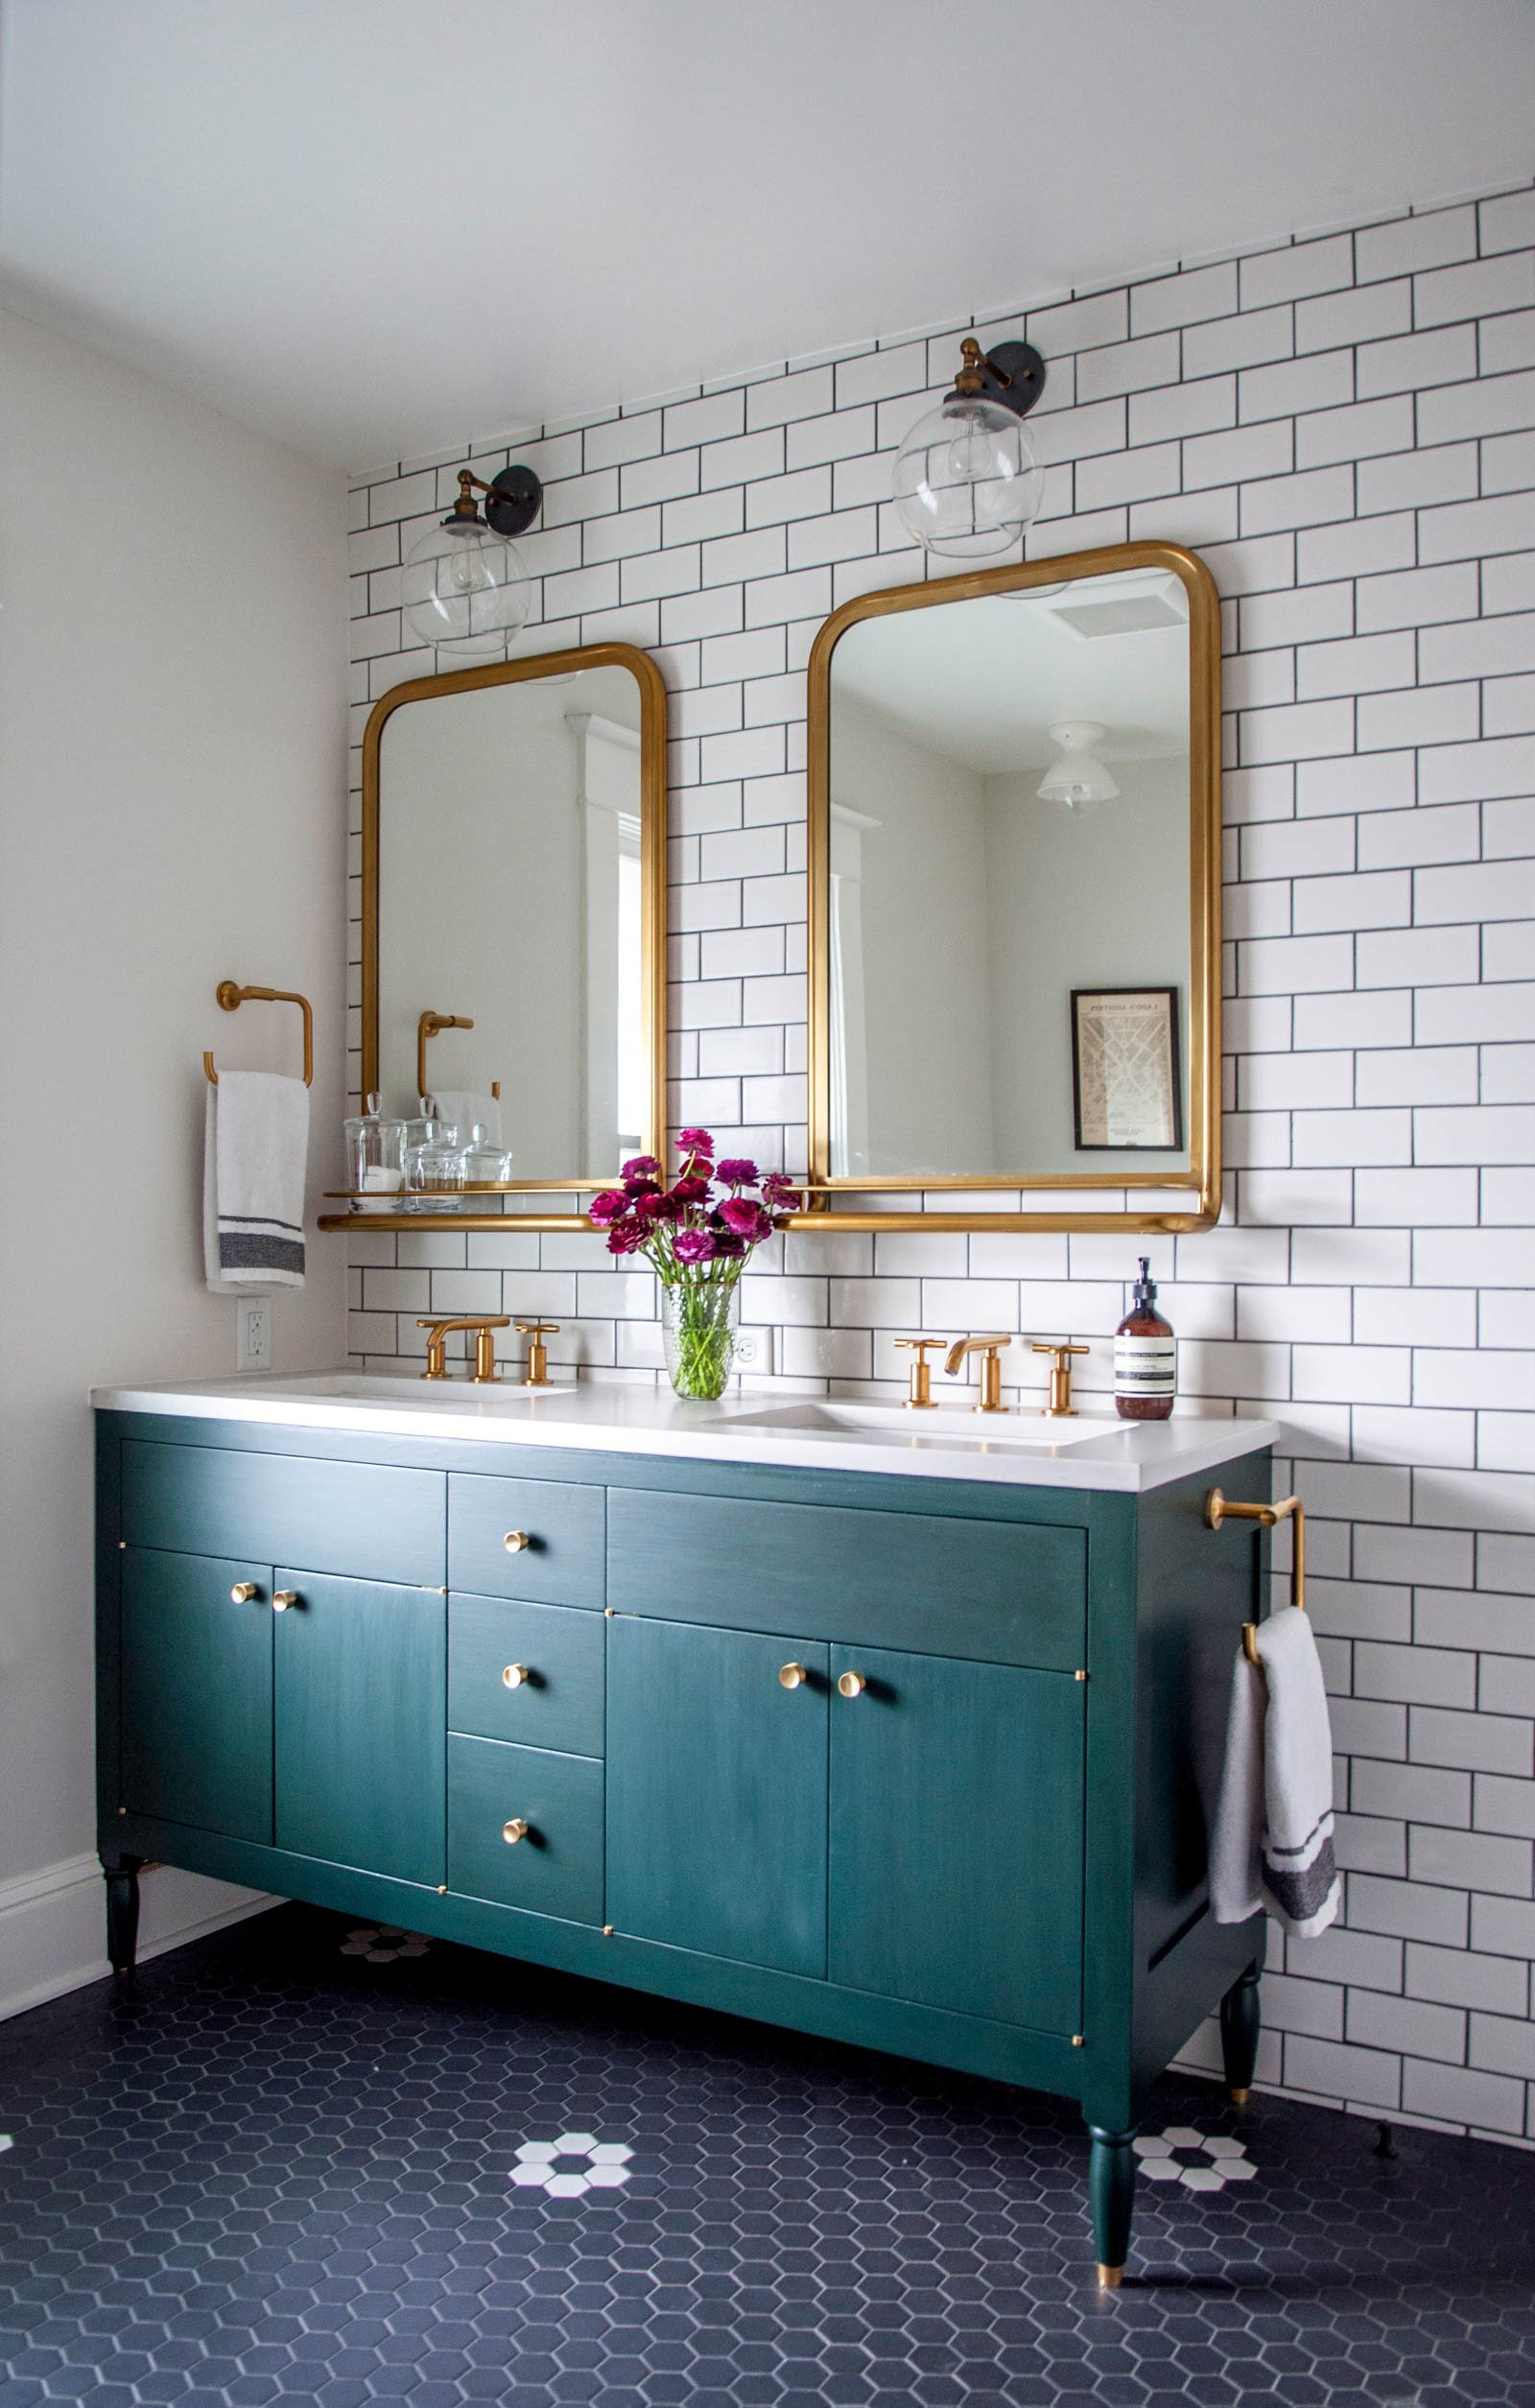 Remodelaholic | Friday Favorites: Marbling, Wallpaper, and ...